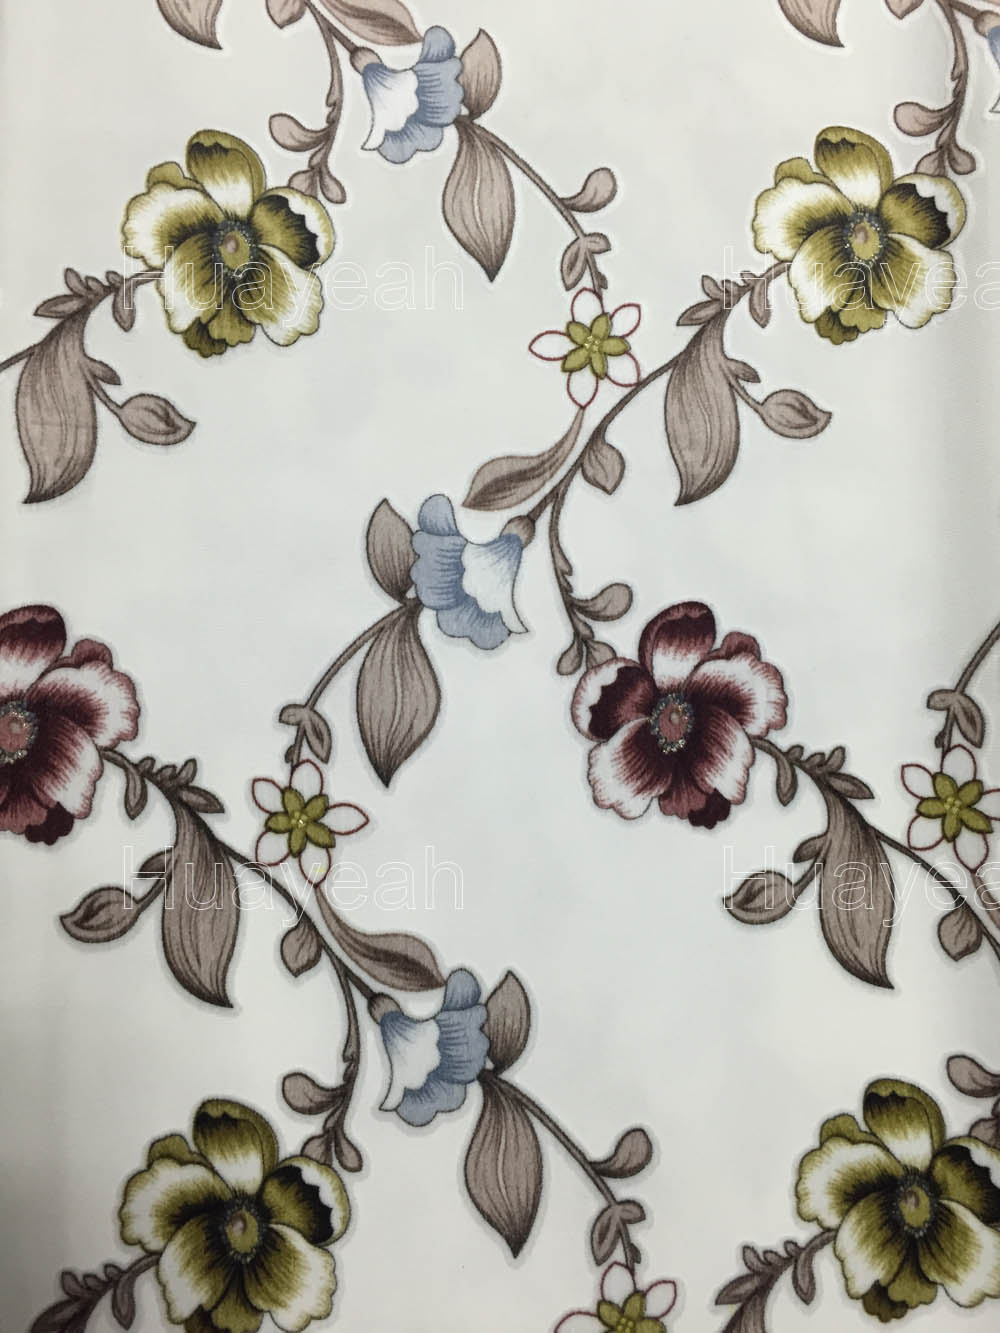 Printed velvet fabric by the yard or meter for sale for Fabric material for sale